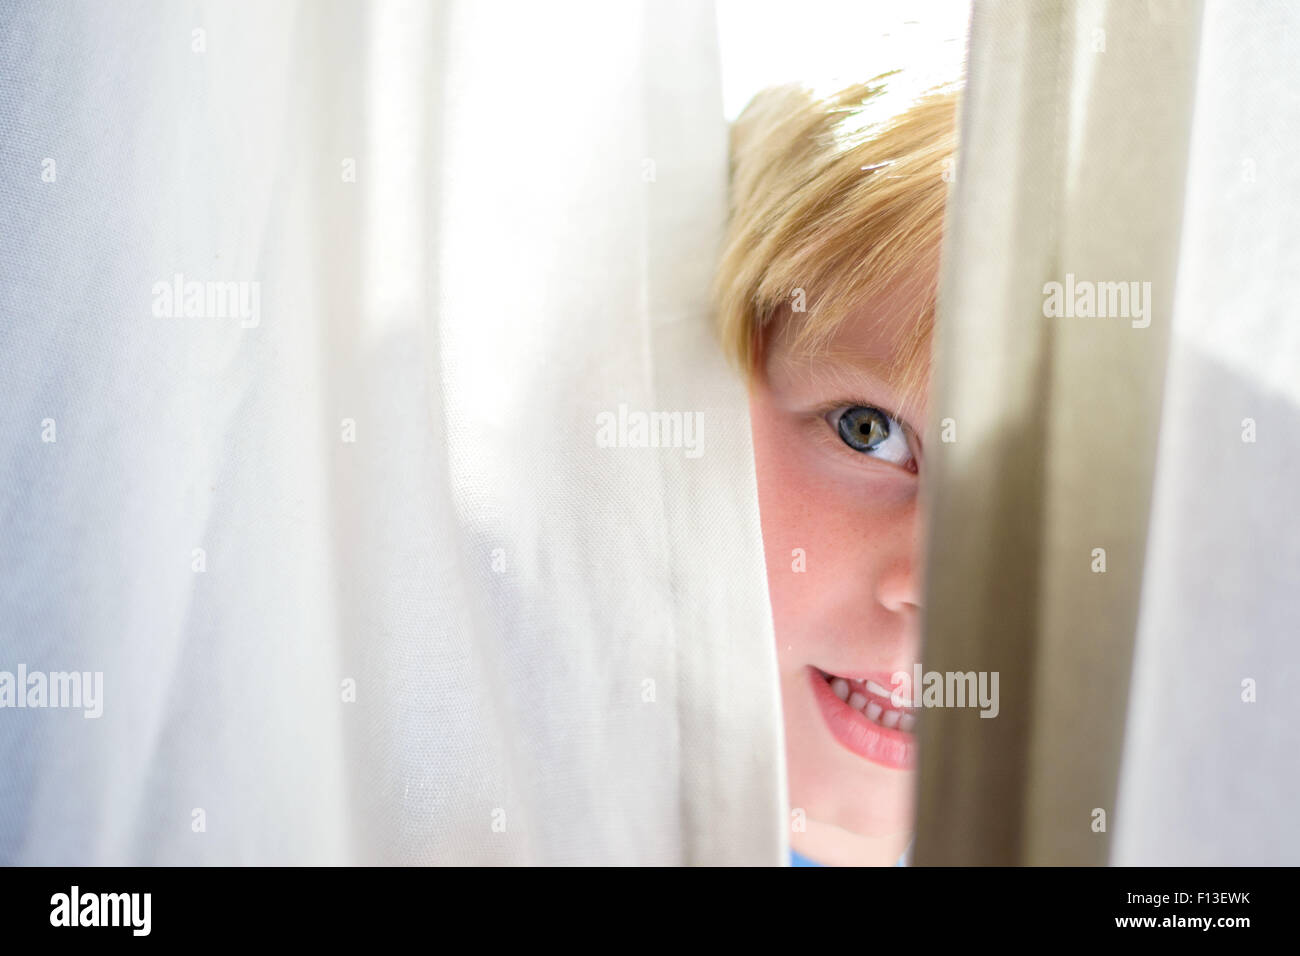 Boy looking out from behind a curtain - Stock Image